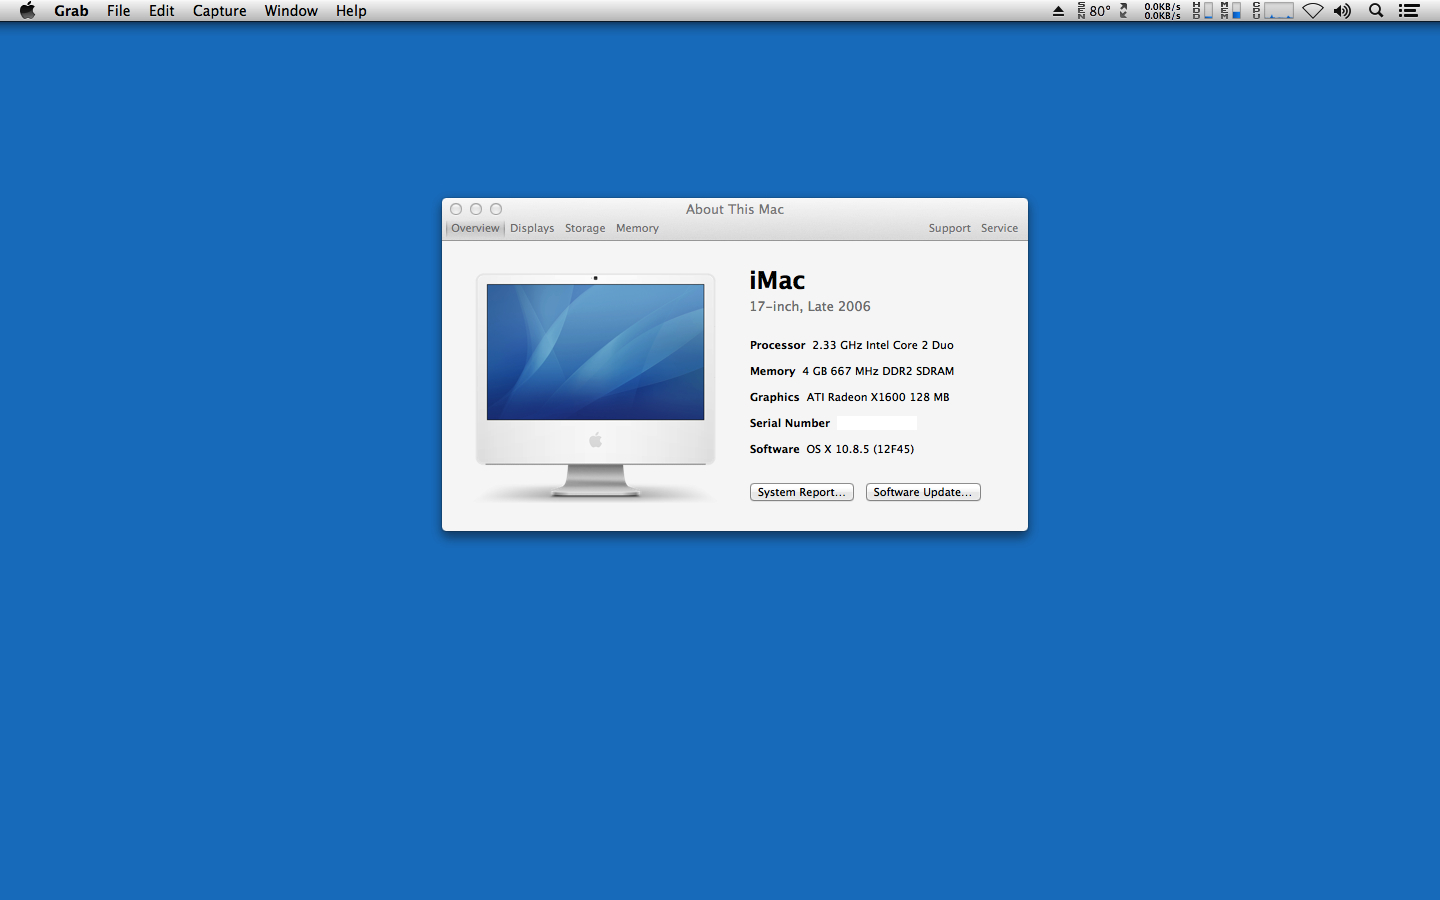 Guide] Success! Install 10 8 on old unsupported Mac | Page